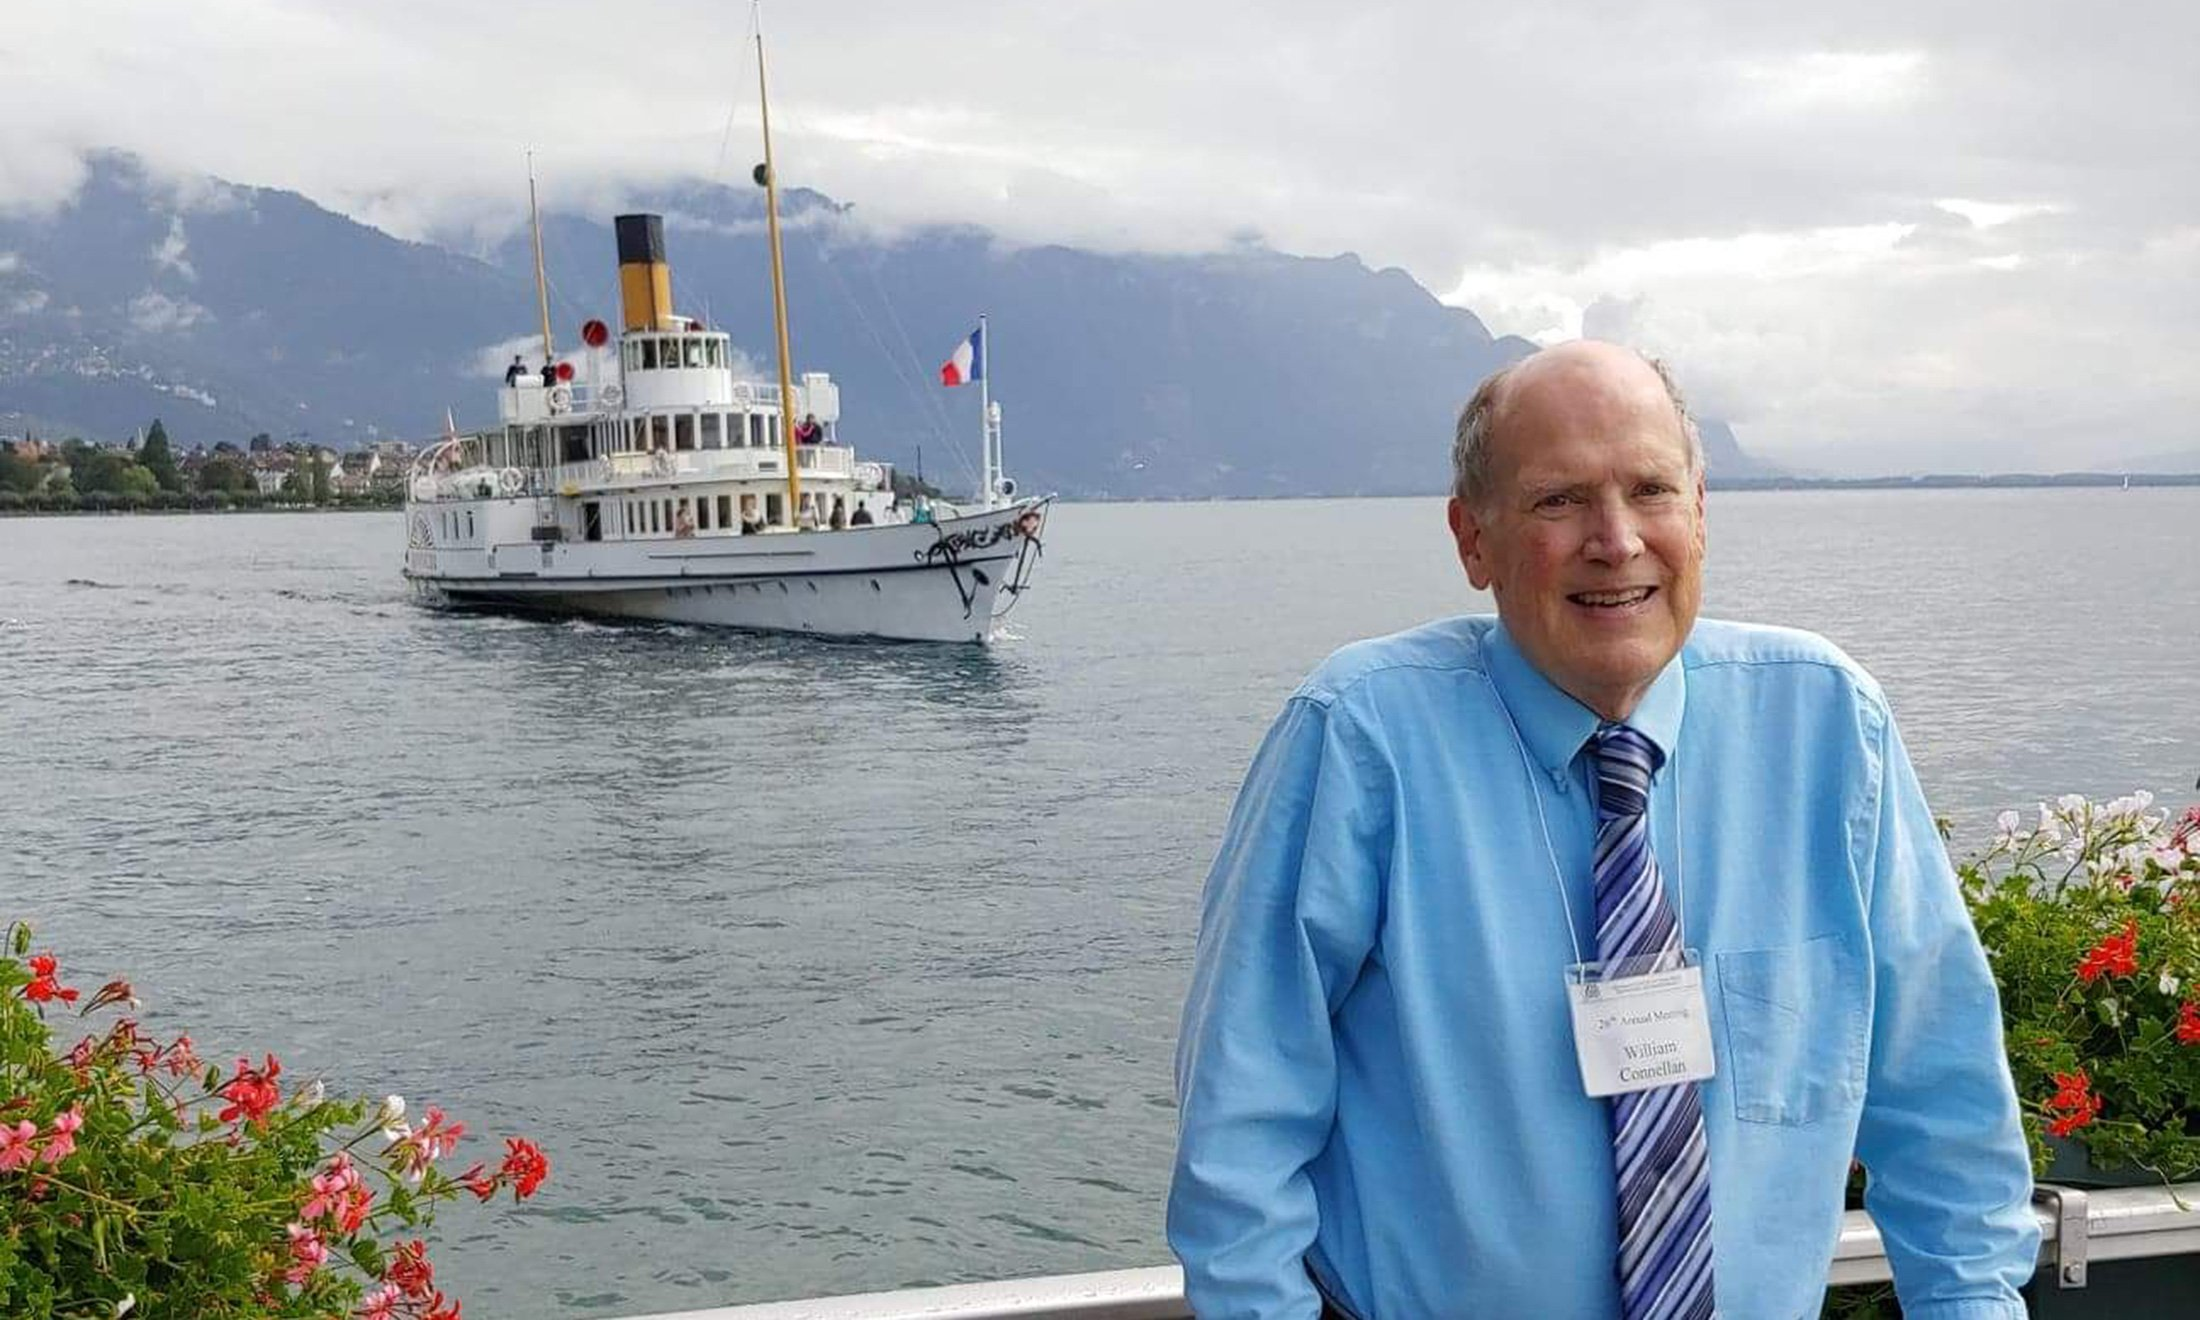 A man smiling with a boat in the background